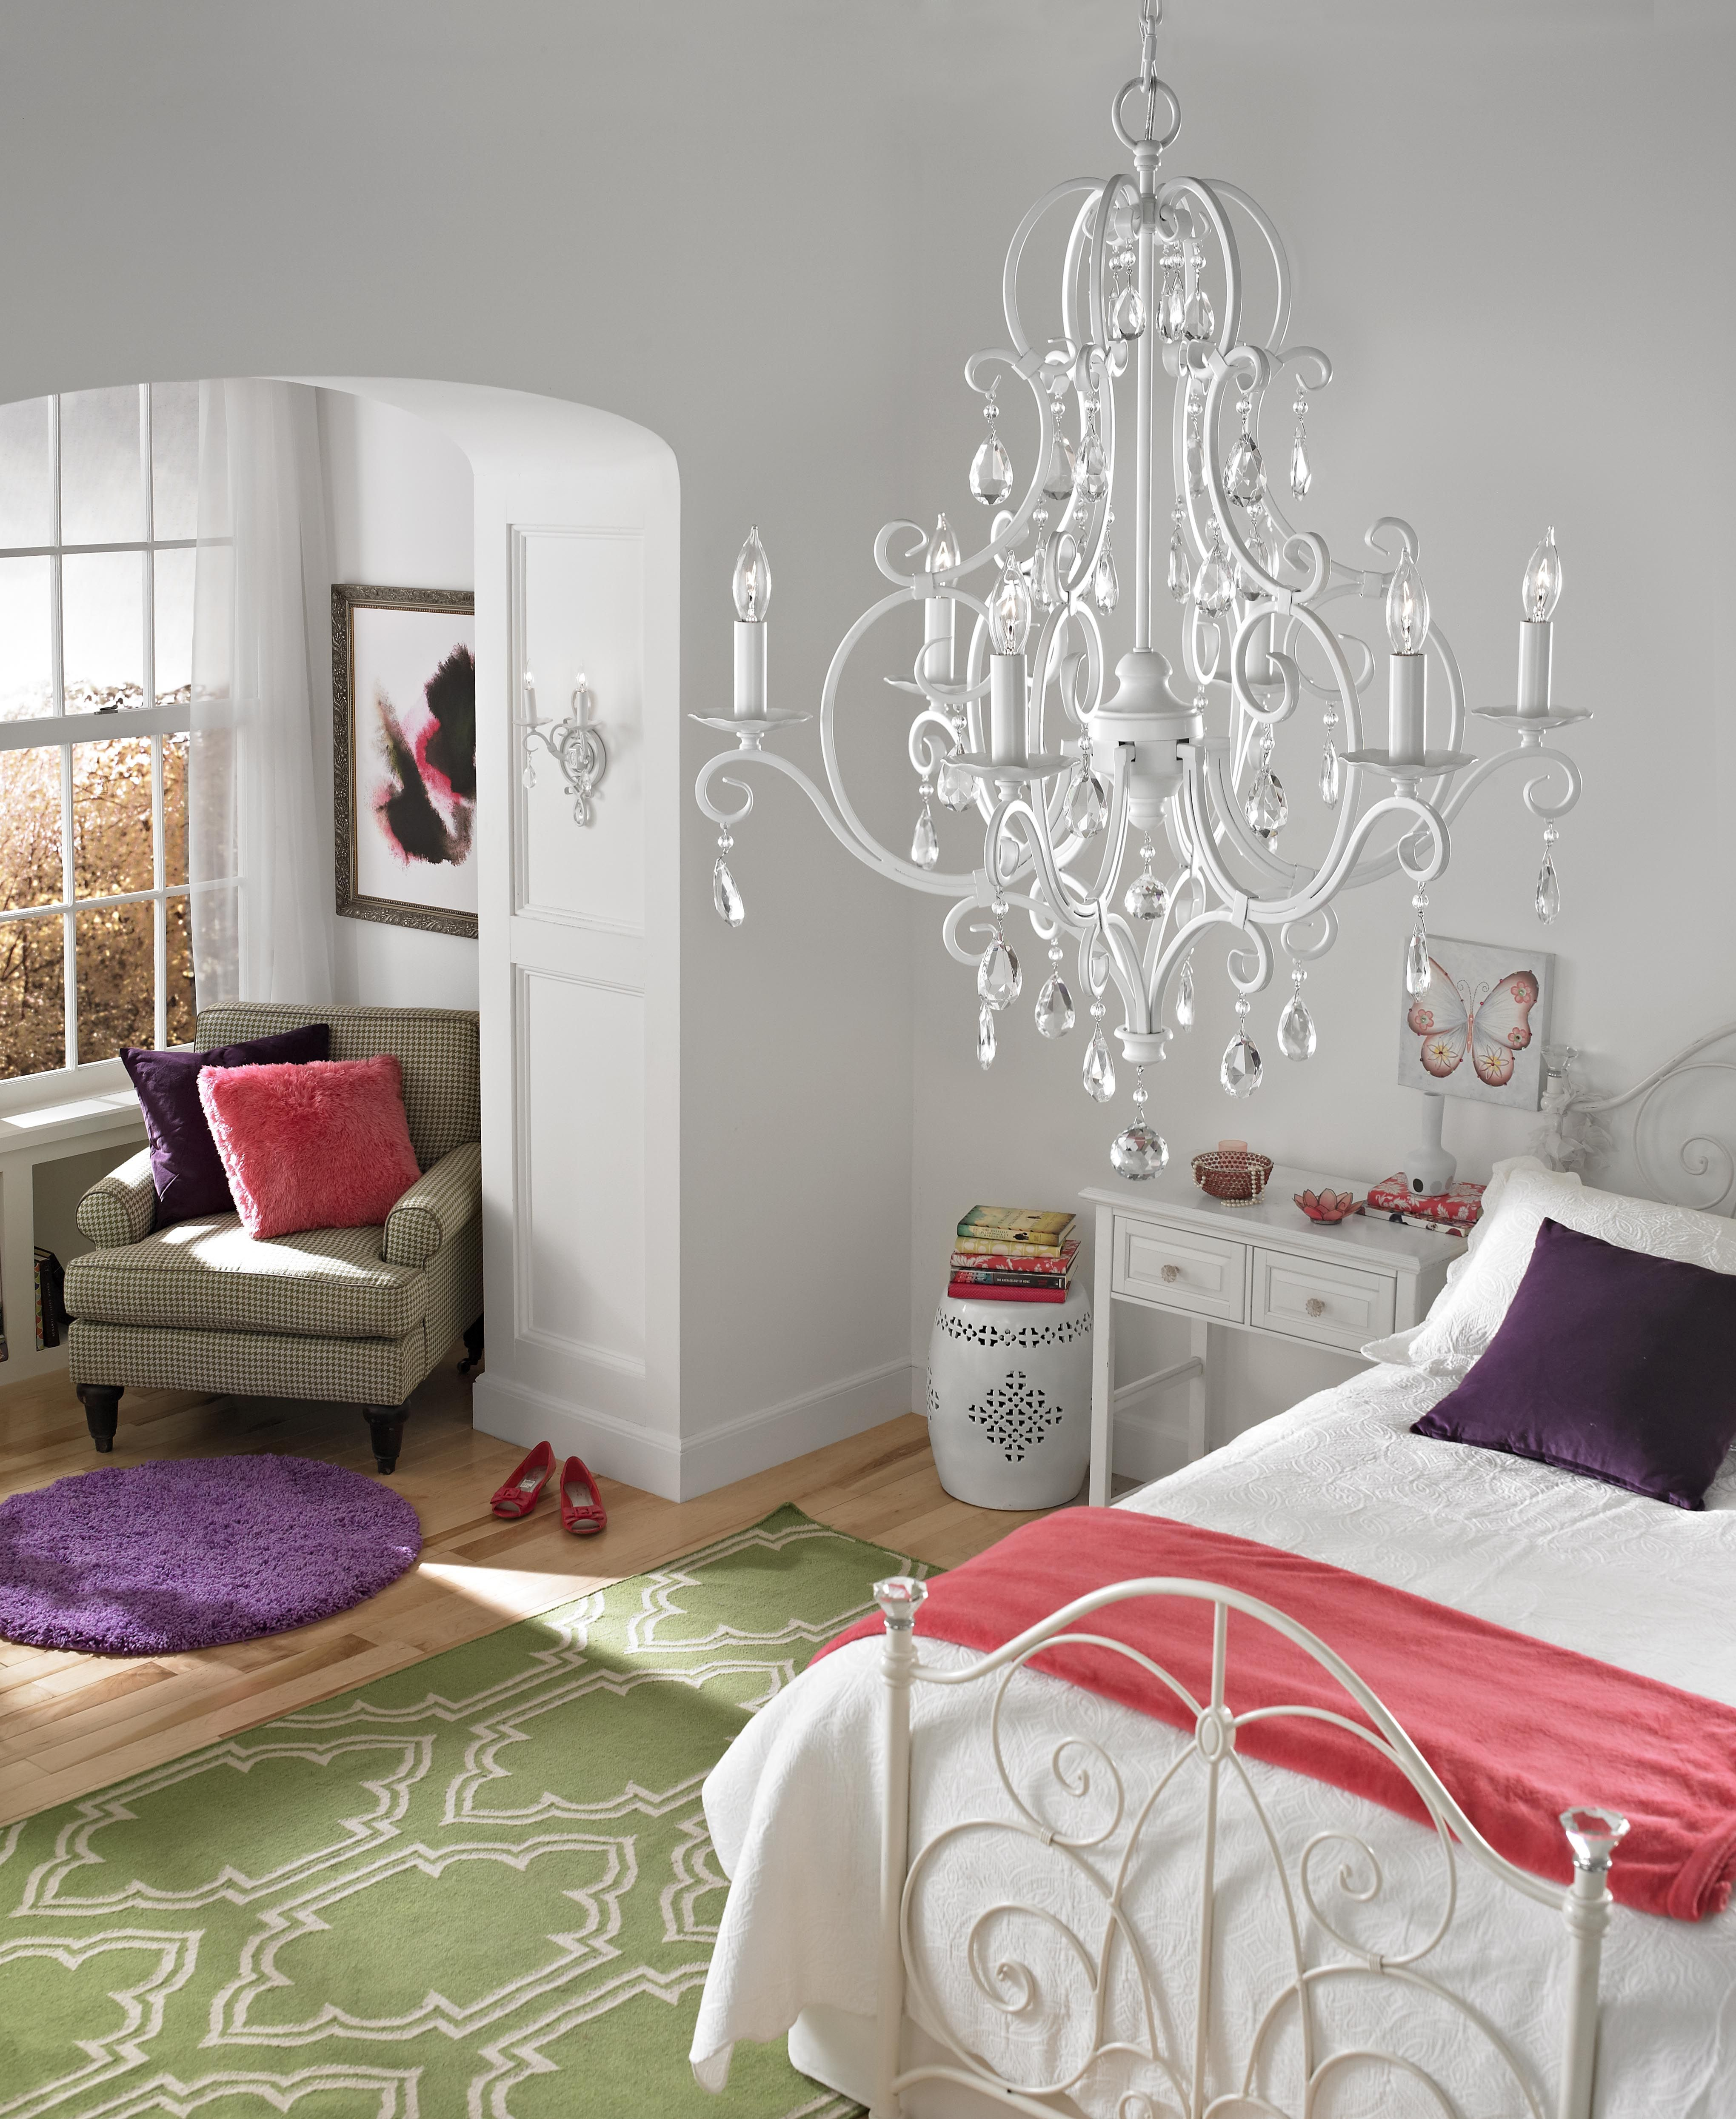 Murray Feiss F2661 8 4htbz: Chandeliers And Sconces Can Light And Dress Up Any Space